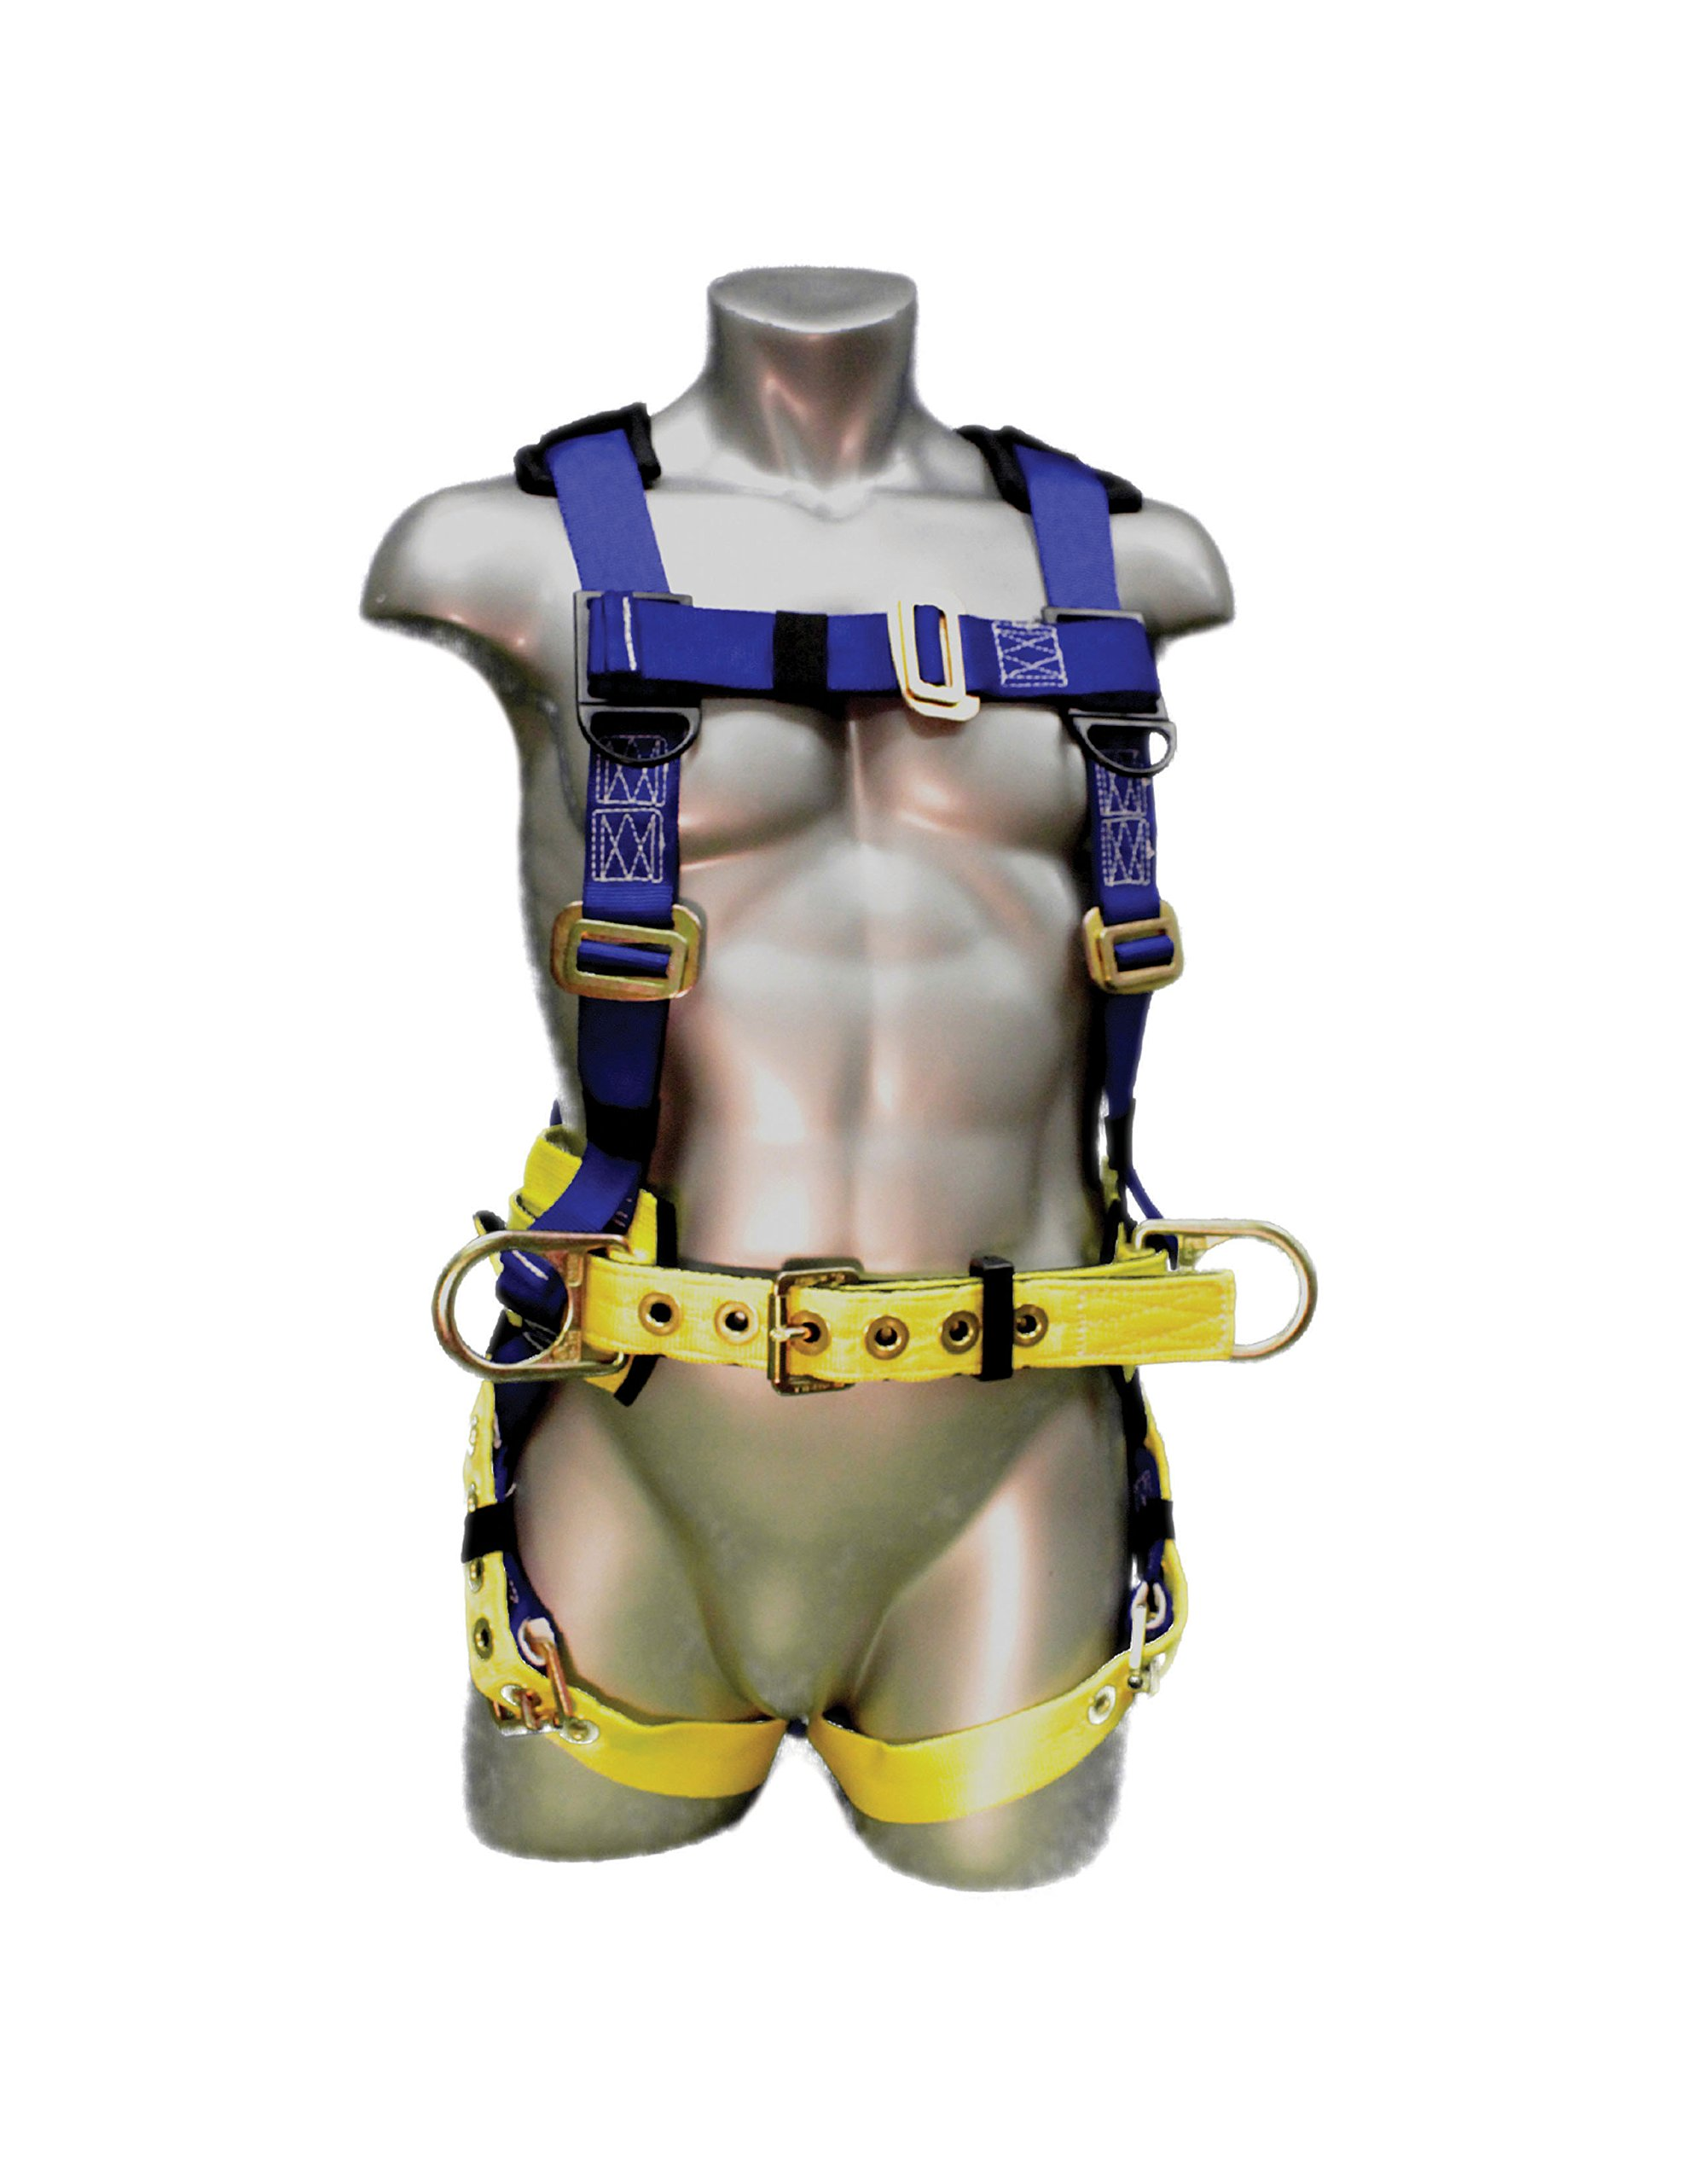 Elk River WorkMaster Harness with Tongue Buckles, 3 D-Rings, Polyester/Nylon, Medium